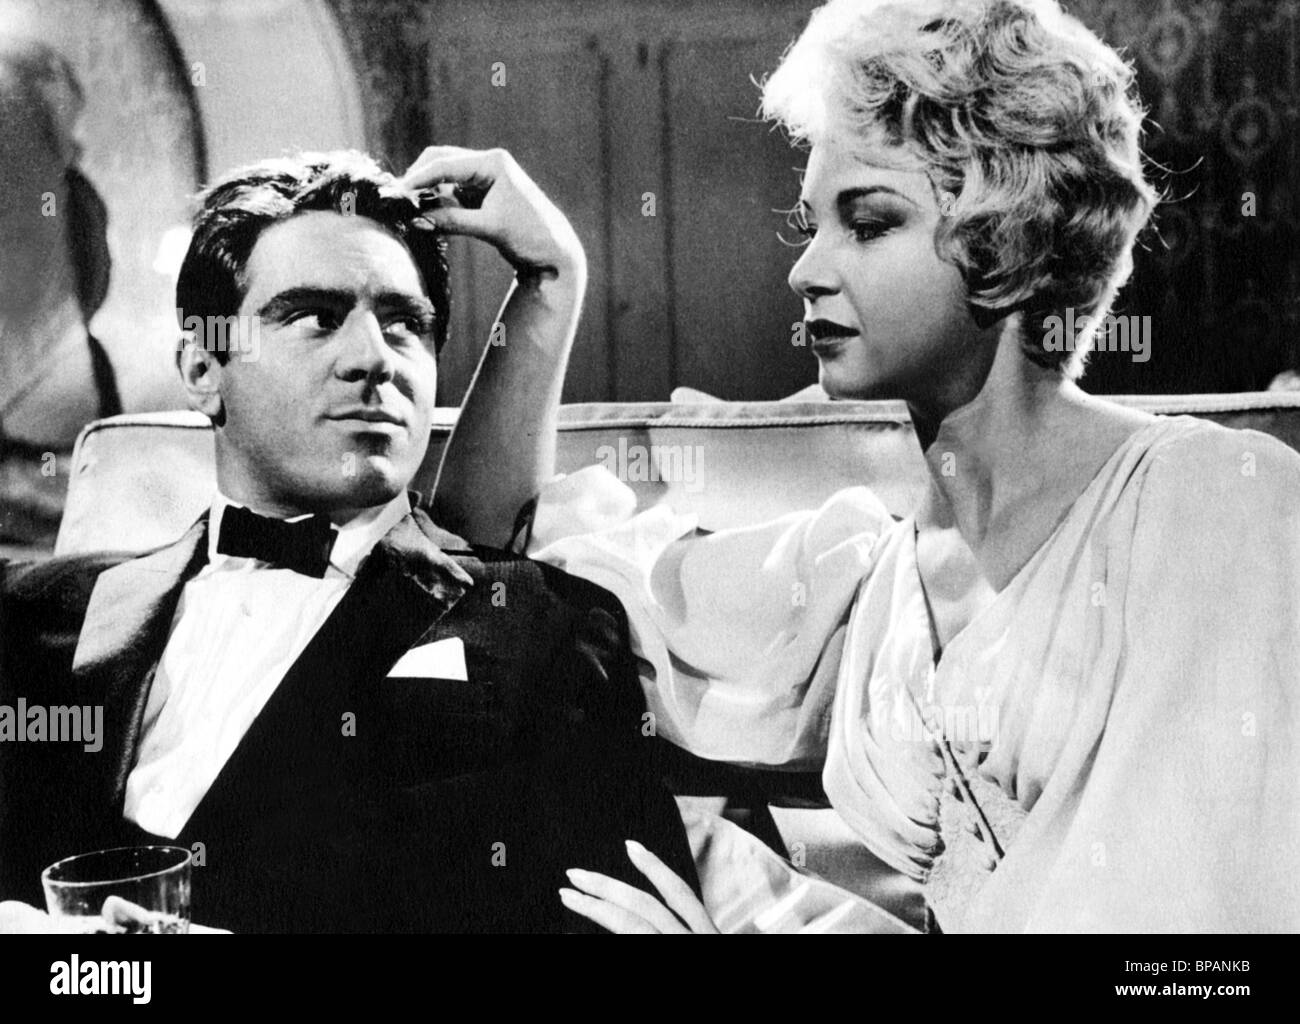 anthony newley pop goes the weasel